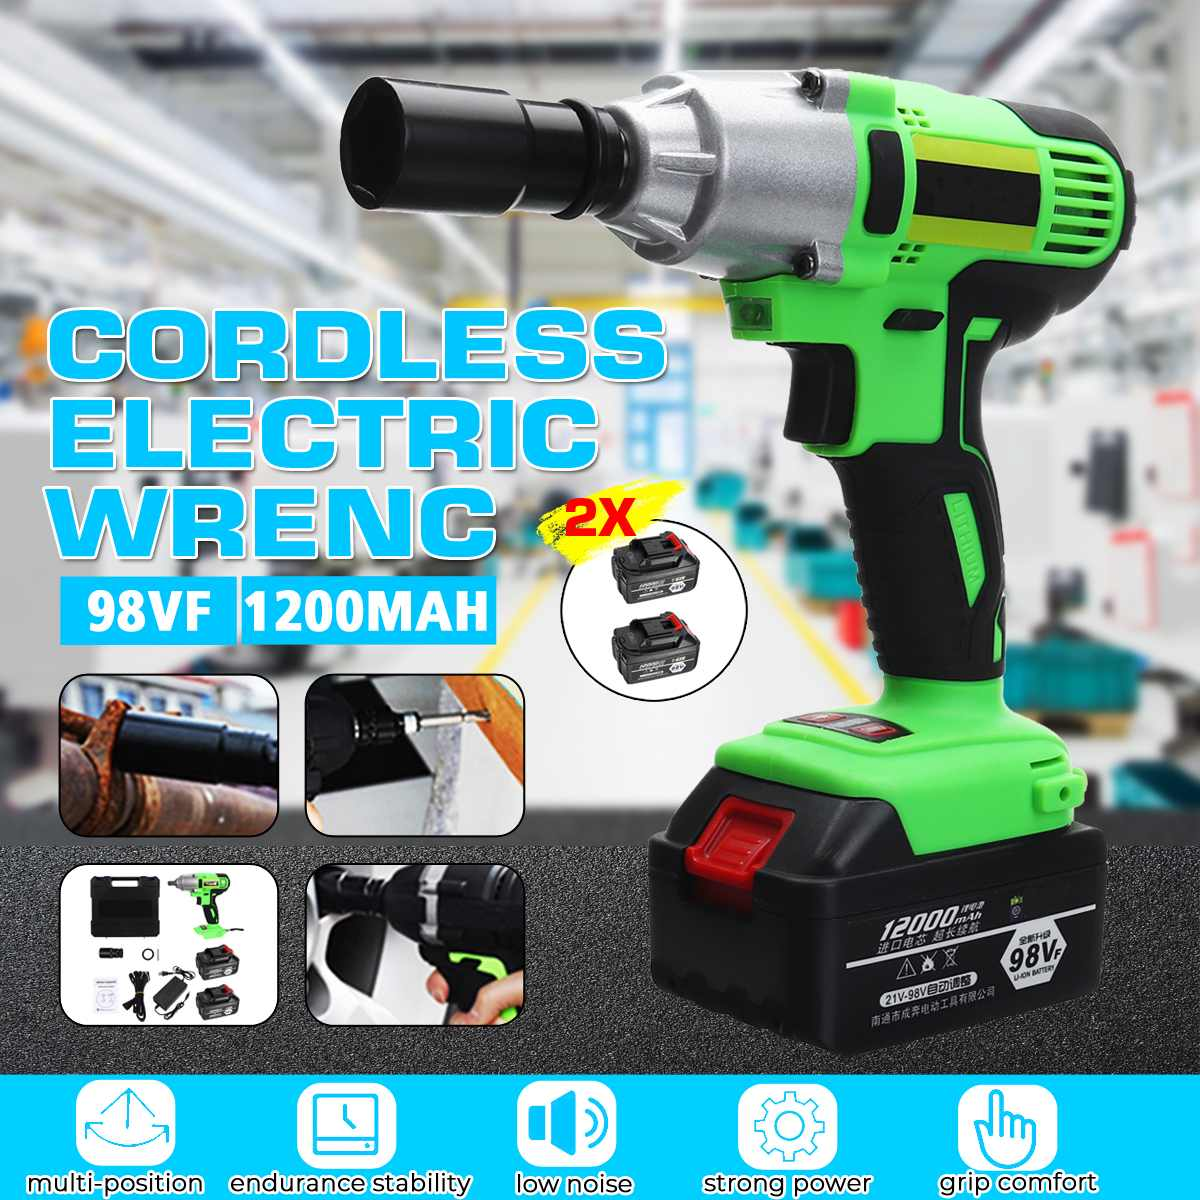 98VF 12000mAh Rechargeable Brushless Electric Wrench Cordless Impact Wrench Socket Wrench Li ion 2 Battery Power Tools|Electric Wrenches| |  - title=